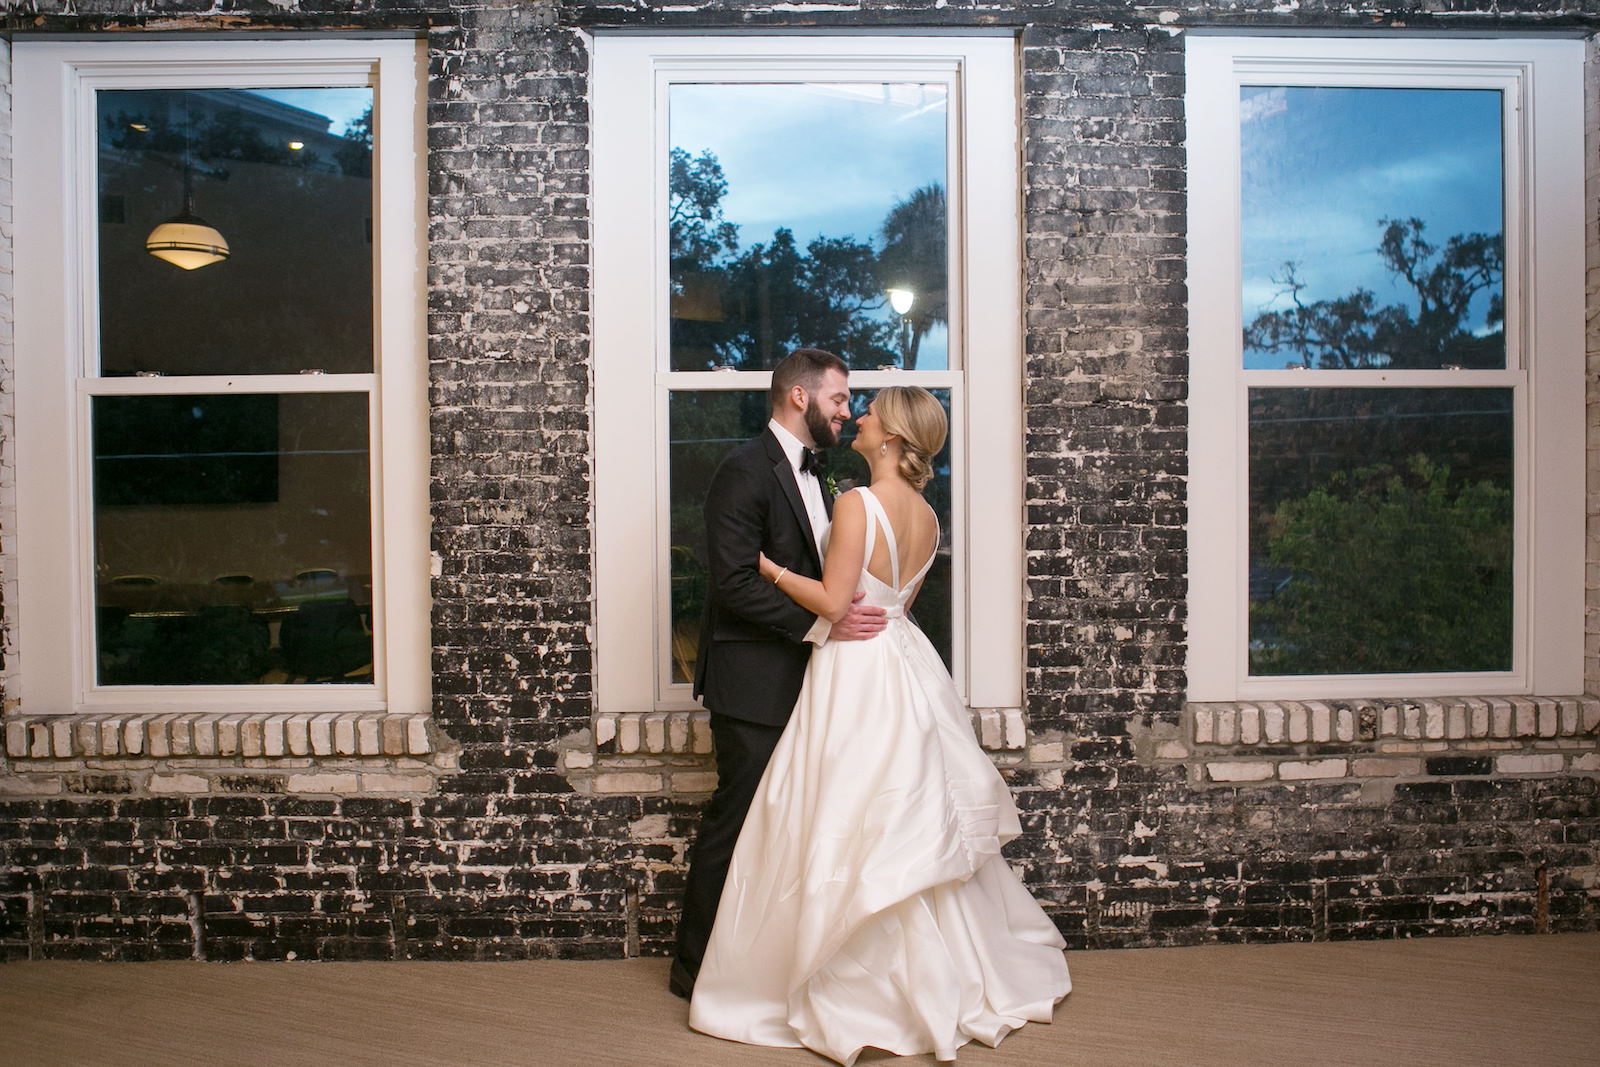 Bride and Groom Indoor Portrait with Exposed Brick Wall Backdrop at Oxford Exchange Wedding Reception in Downtown Tampa | Bateau Neck Mikado Satin Martina Liana Simple Elegant Wedding Dress with Buttons Down Back | Groom in Classic Black Tux